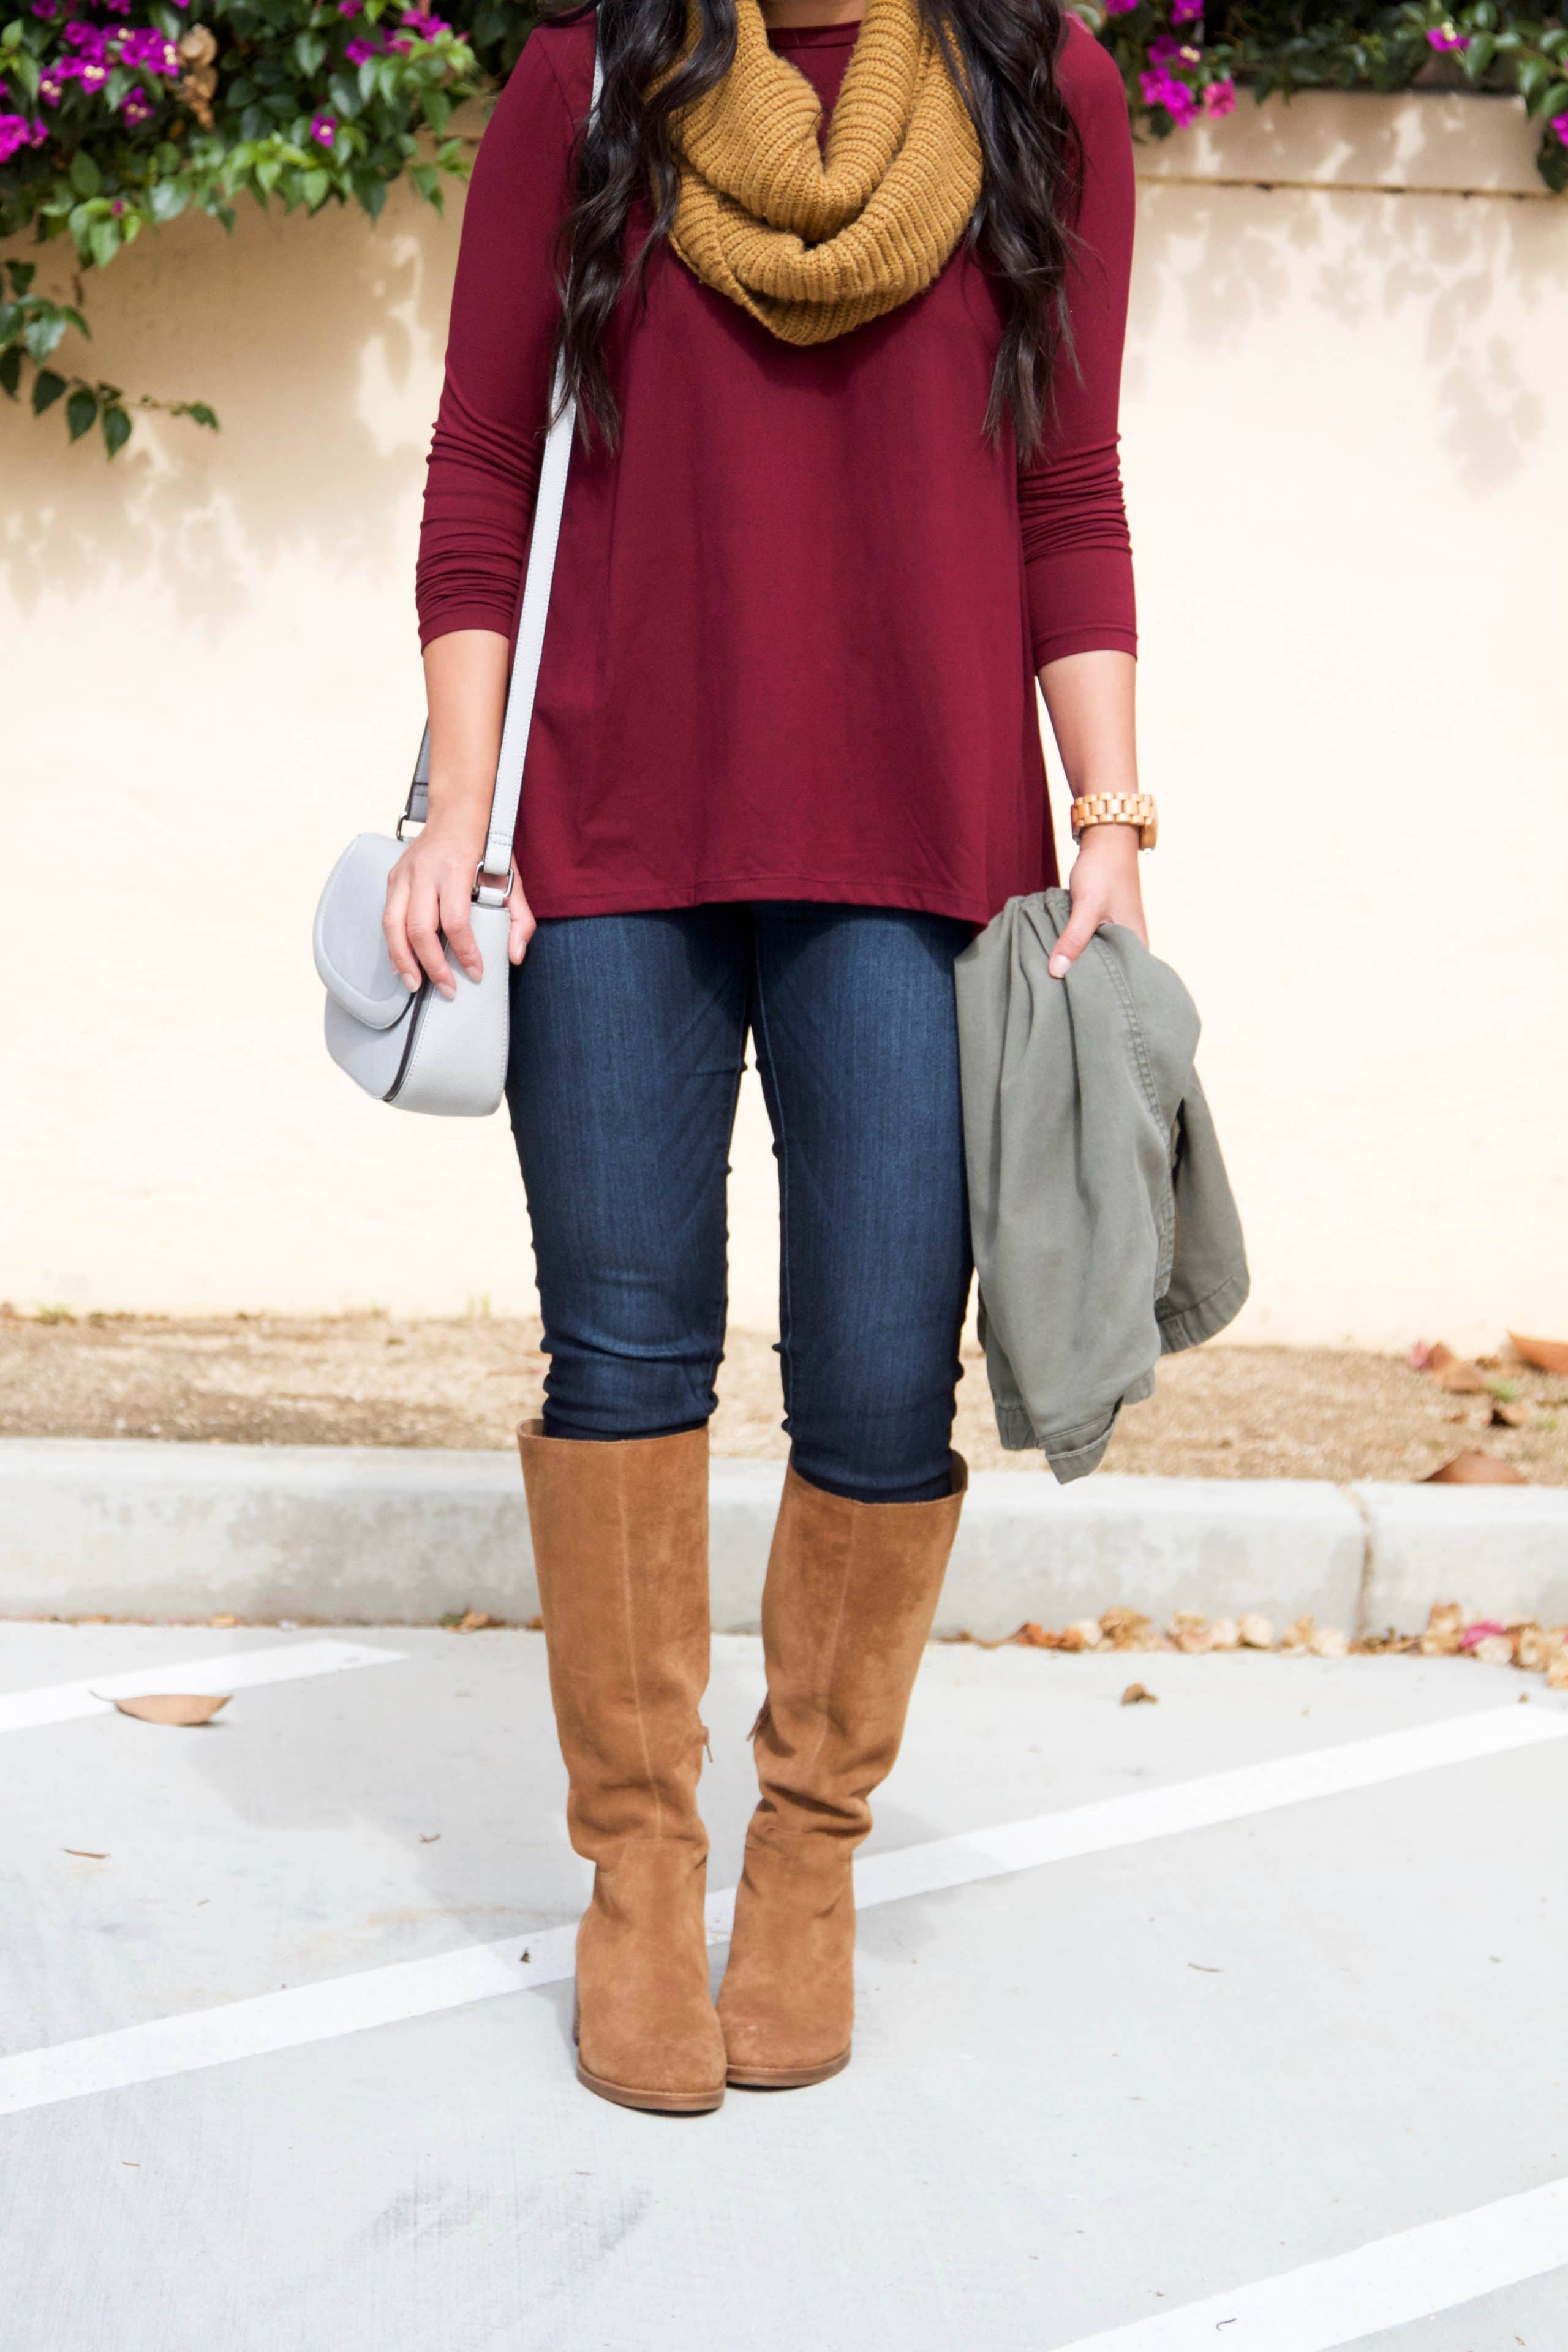 maroon top + jeans + mustard scarf + tan suede boots